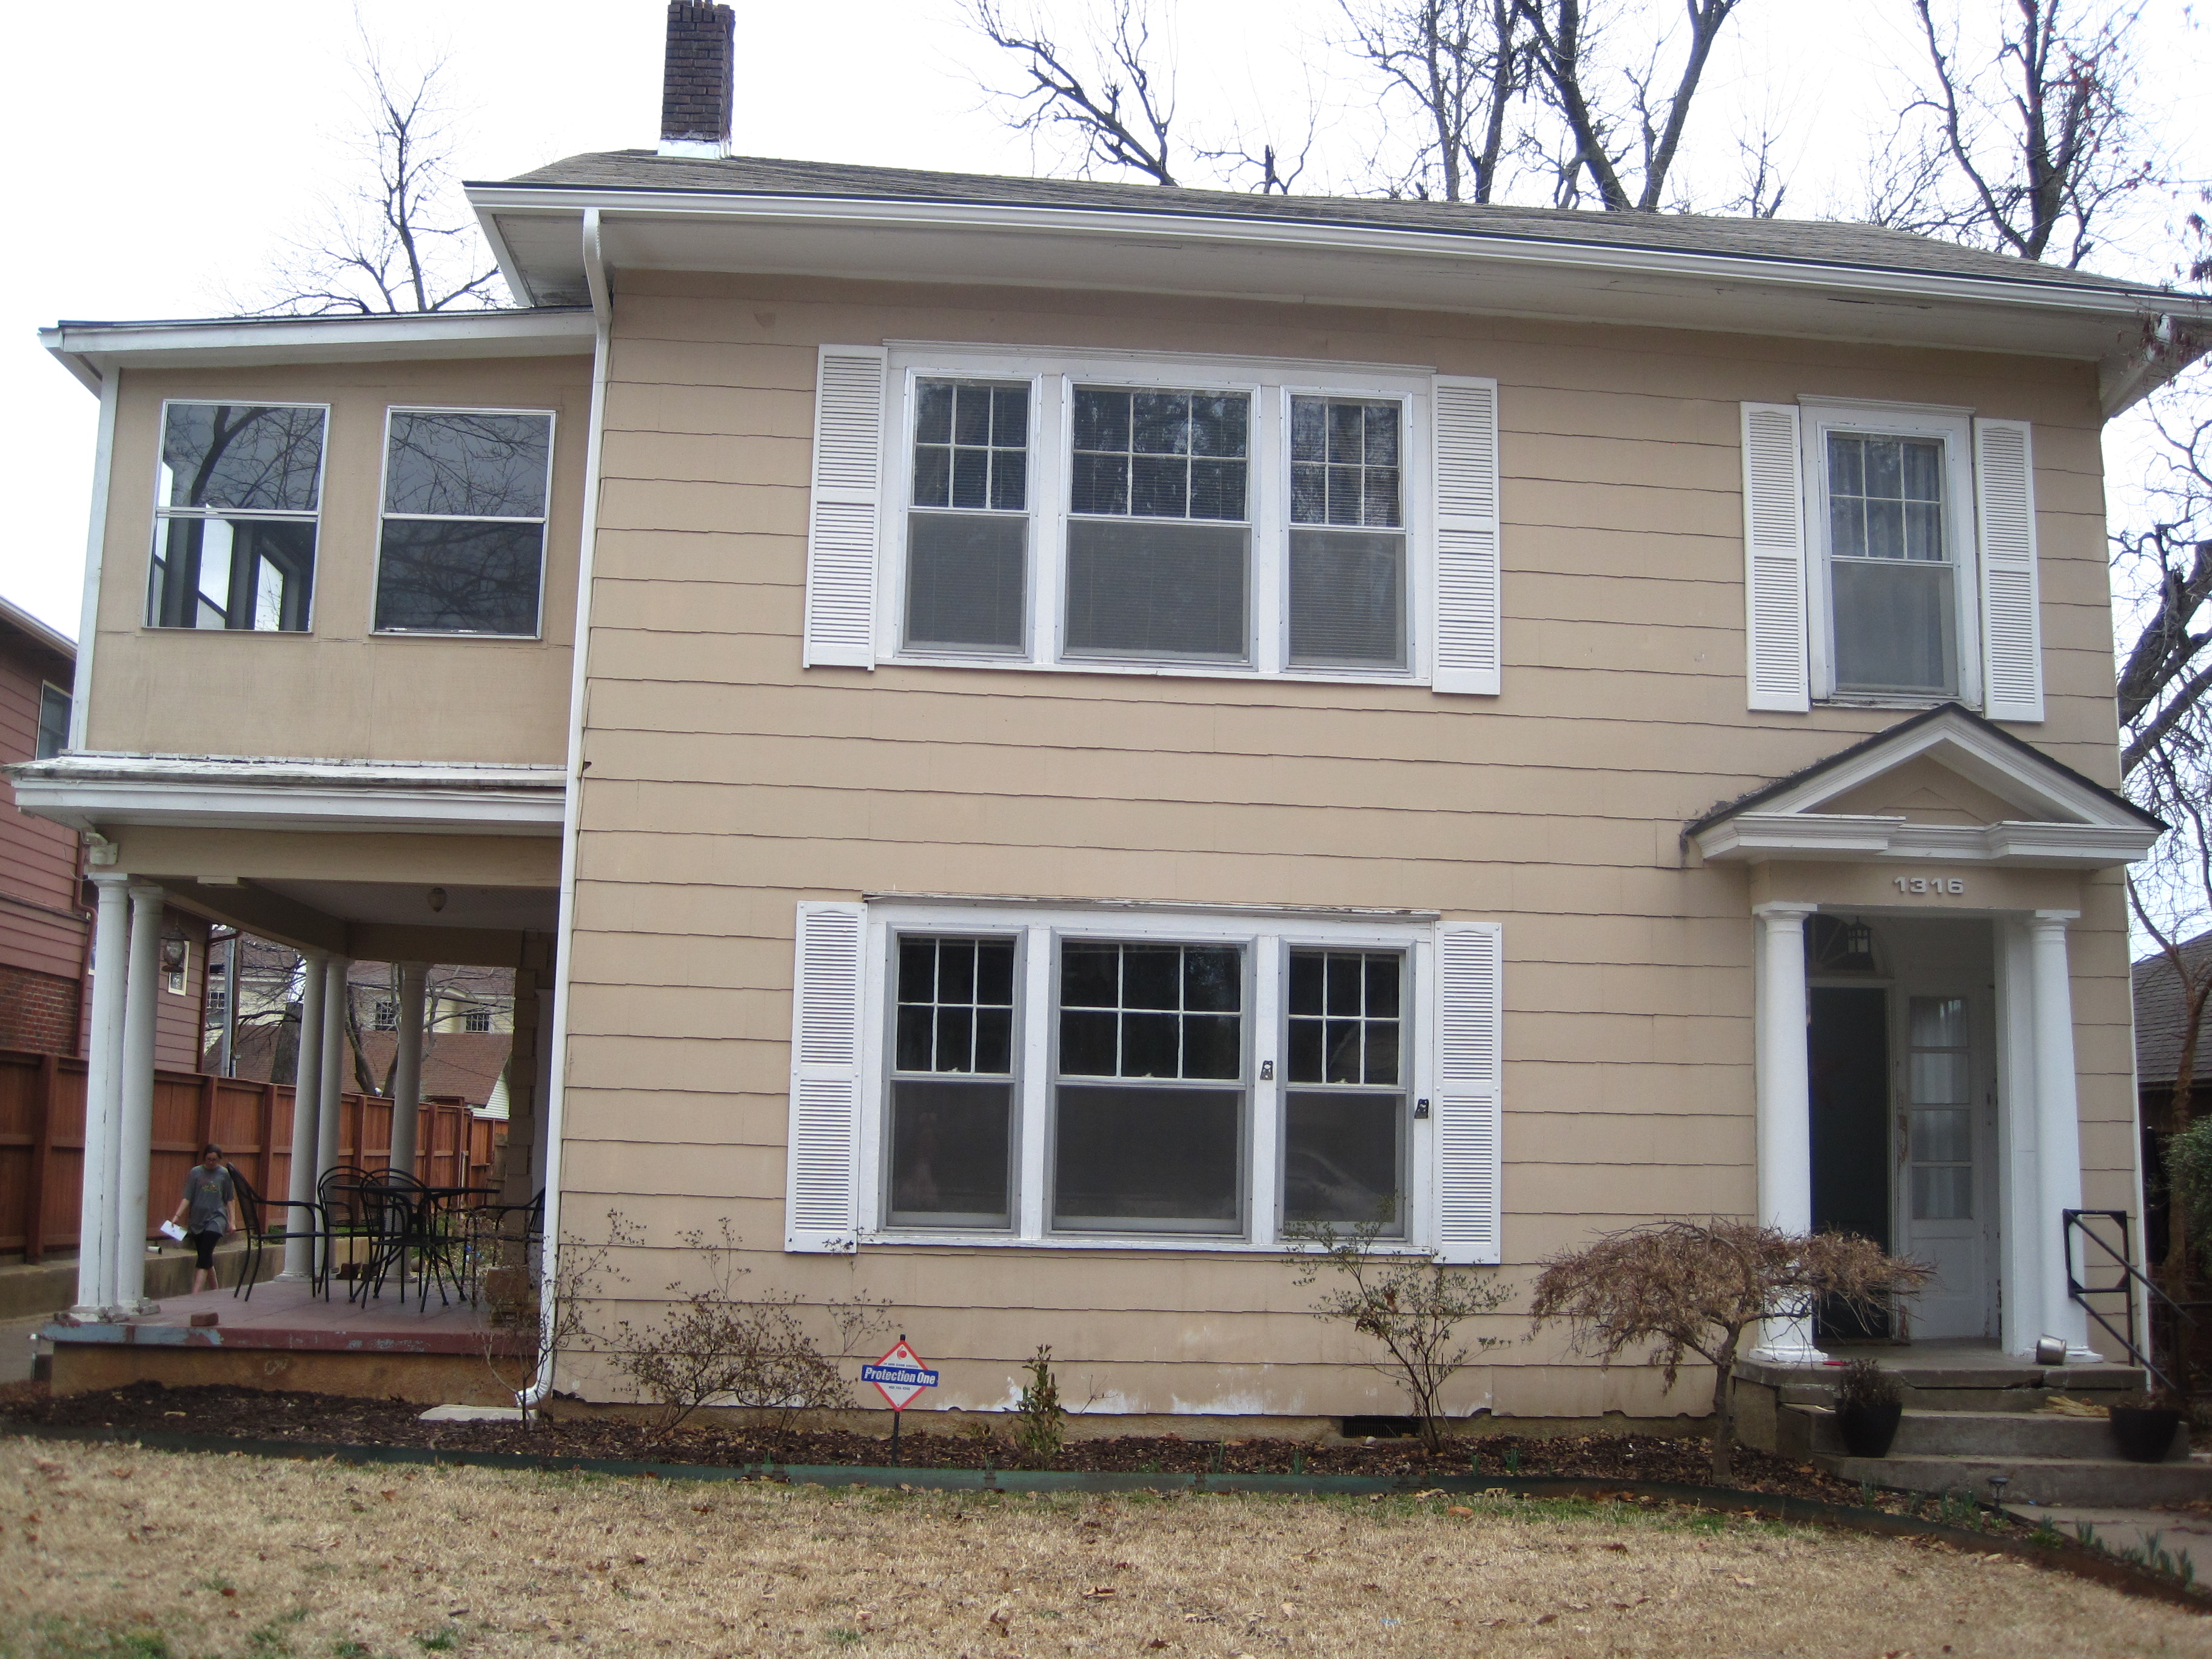 Removing Siding From House 28 Images Remove Mold From Siding Of House Vinyl Siding Mold